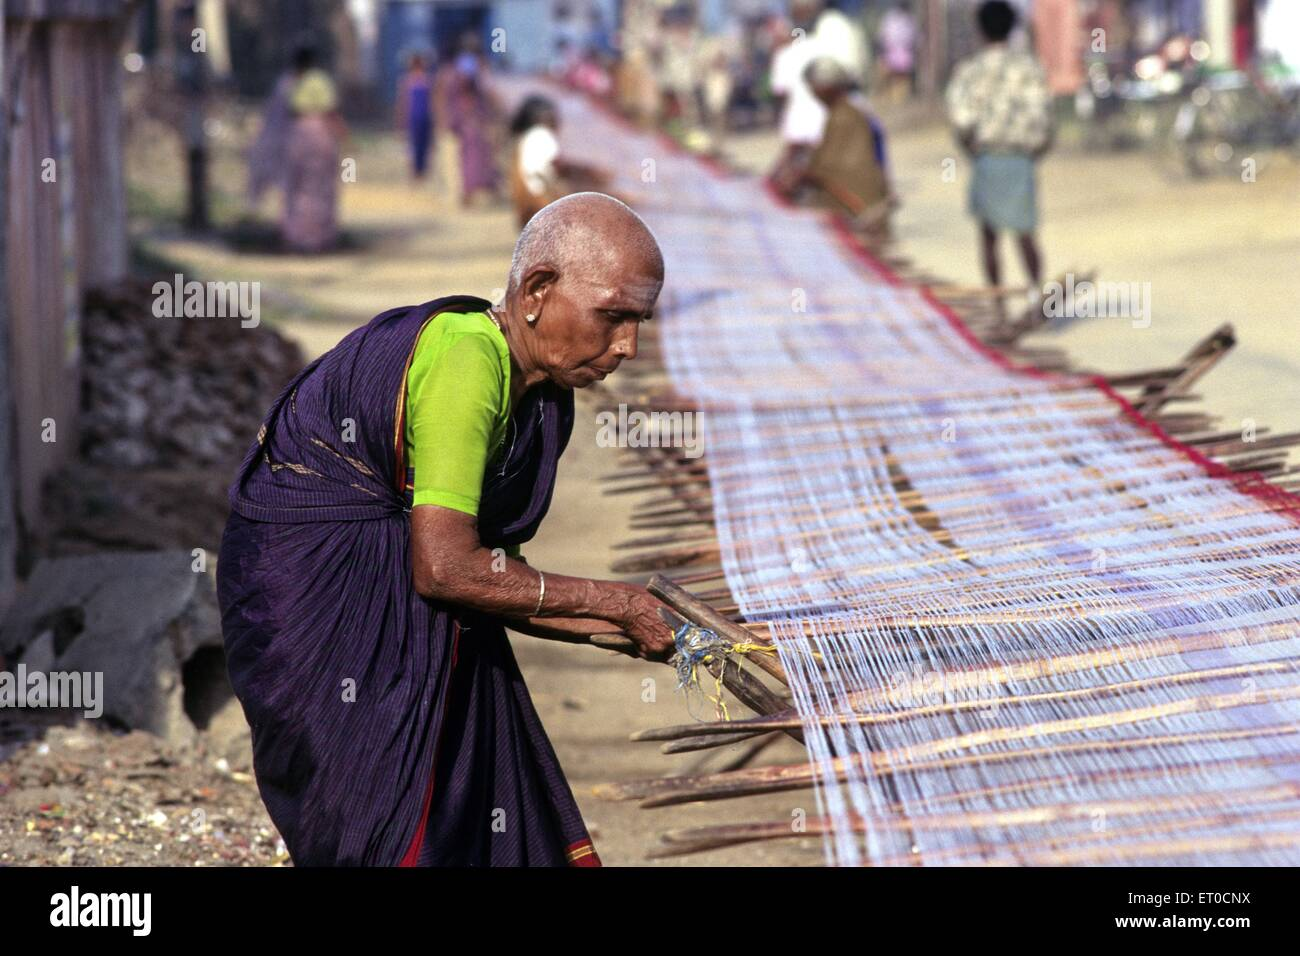 woman weaving india stockfotos woman weaving india bilder alamy. Black Bedroom Furniture Sets. Home Design Ideas